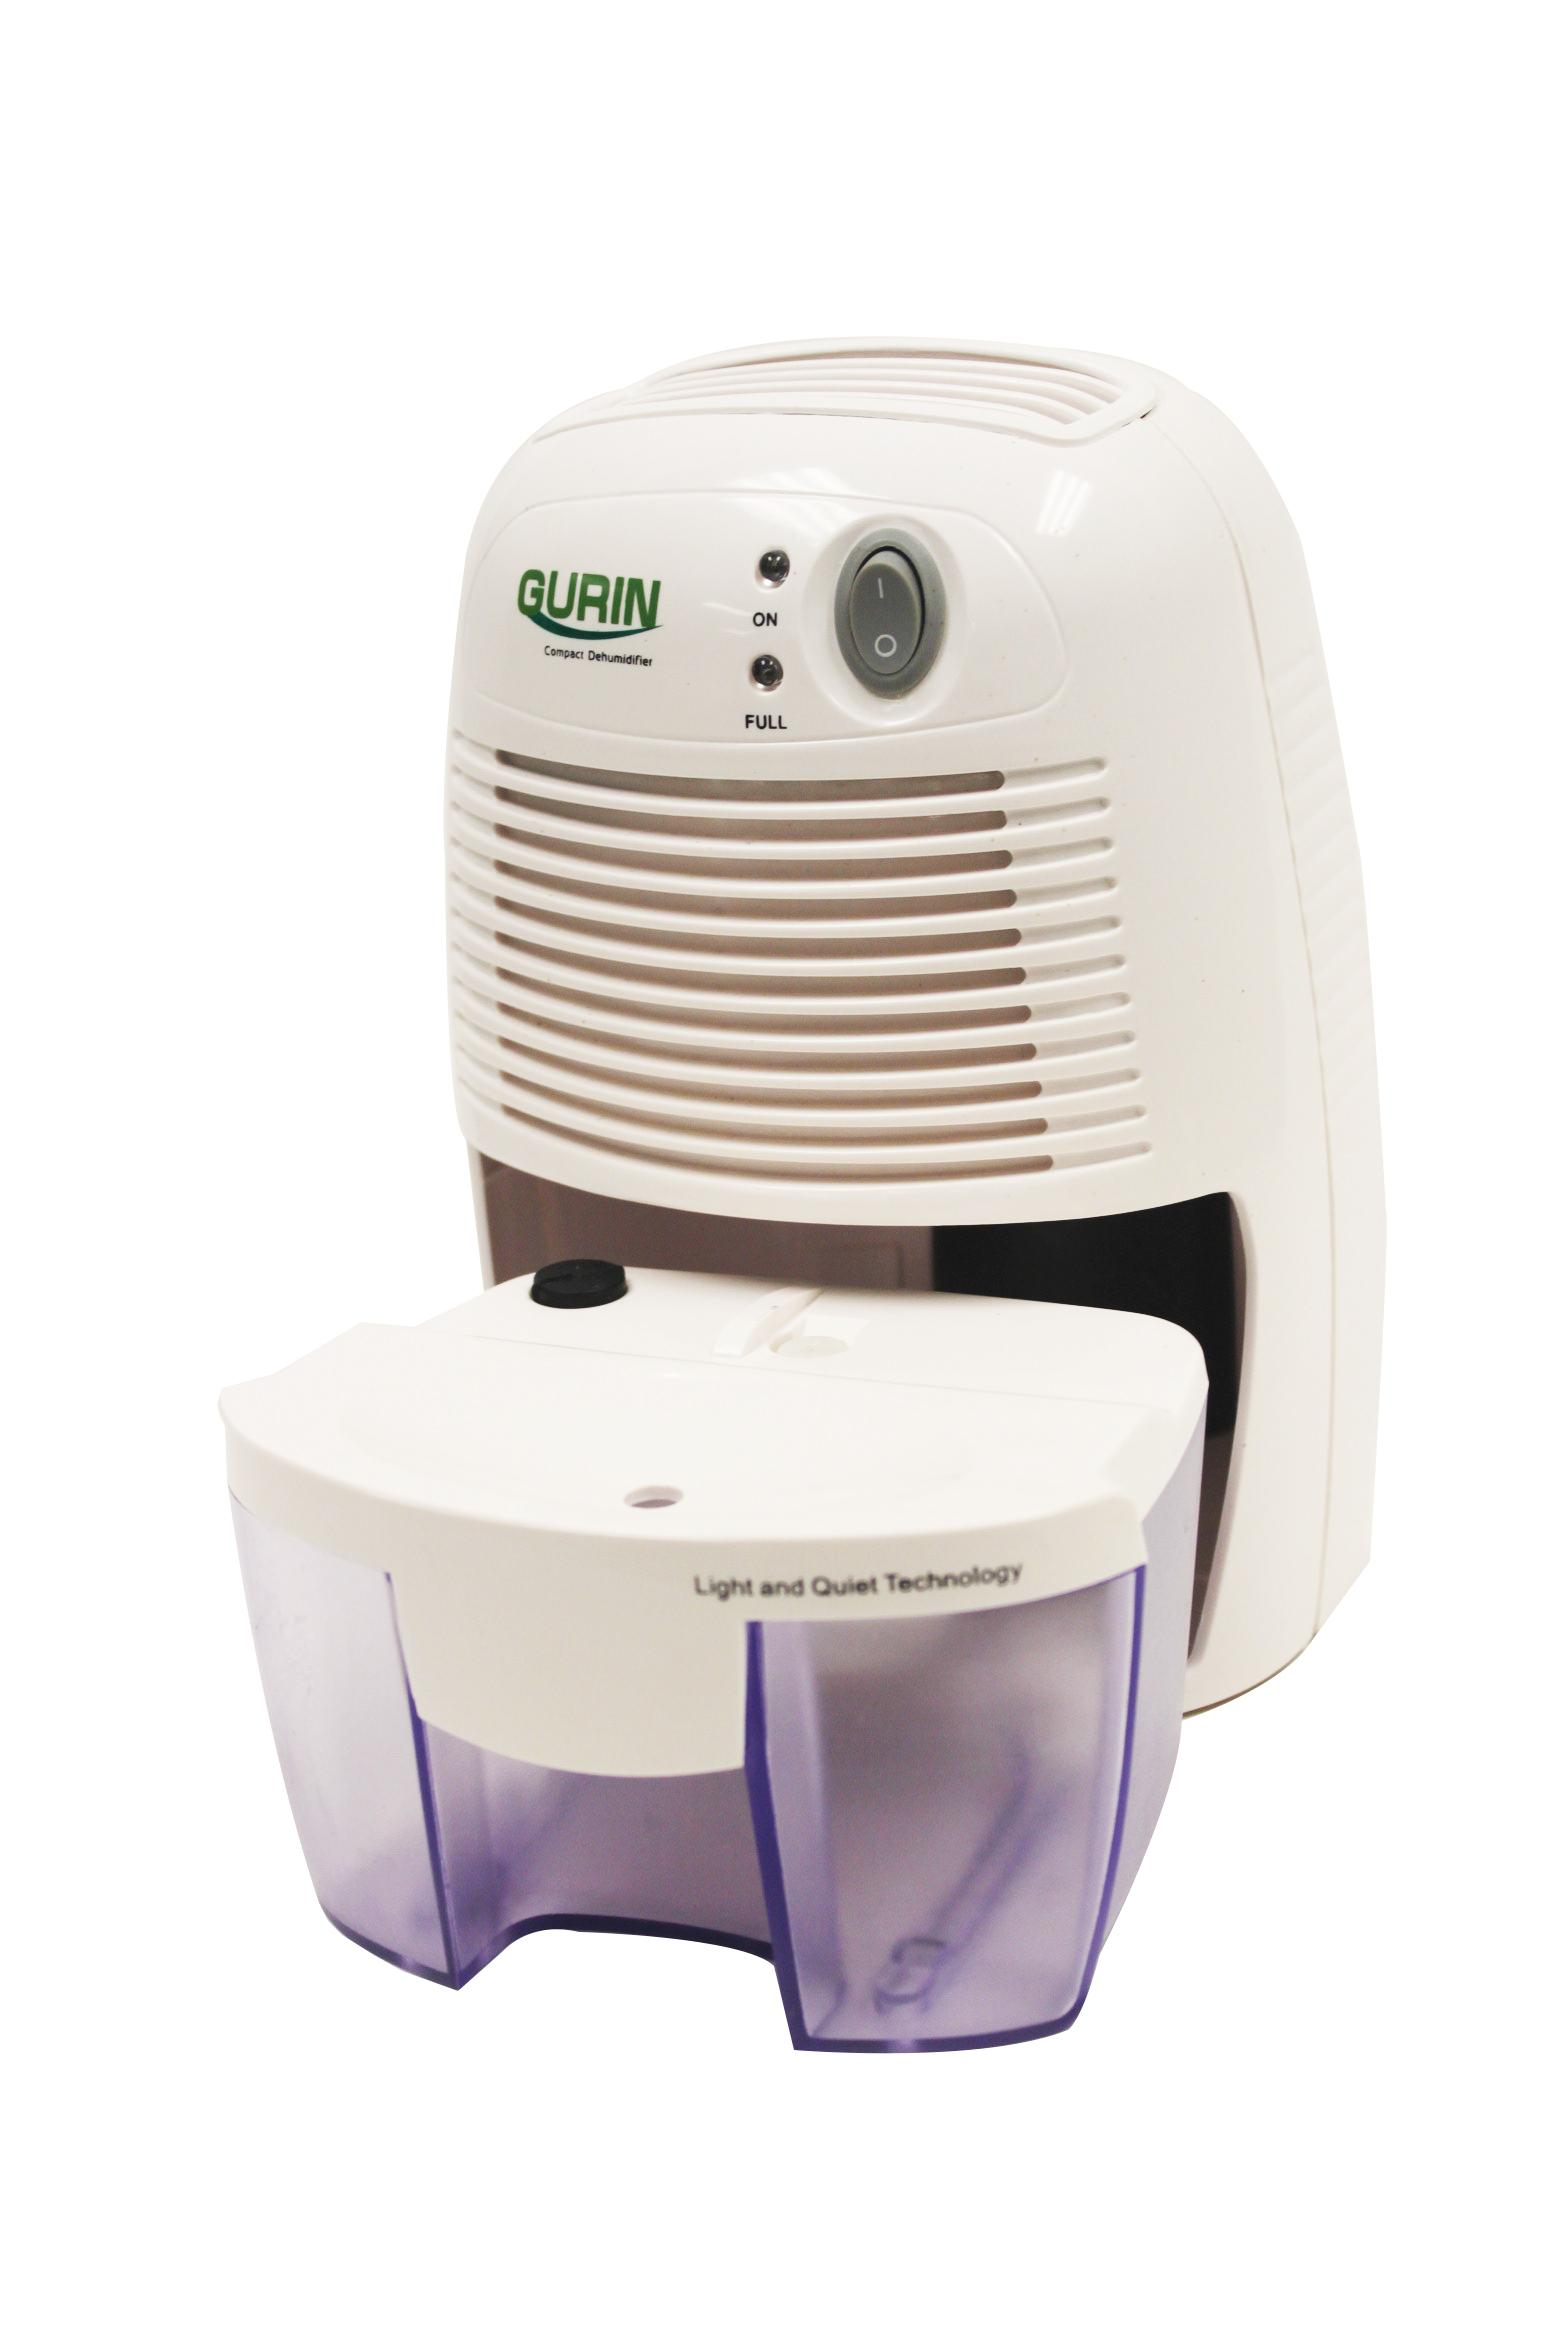 Gurin DHMD 210 Electric Compact Dehumidifier Image With Water Tank #433568